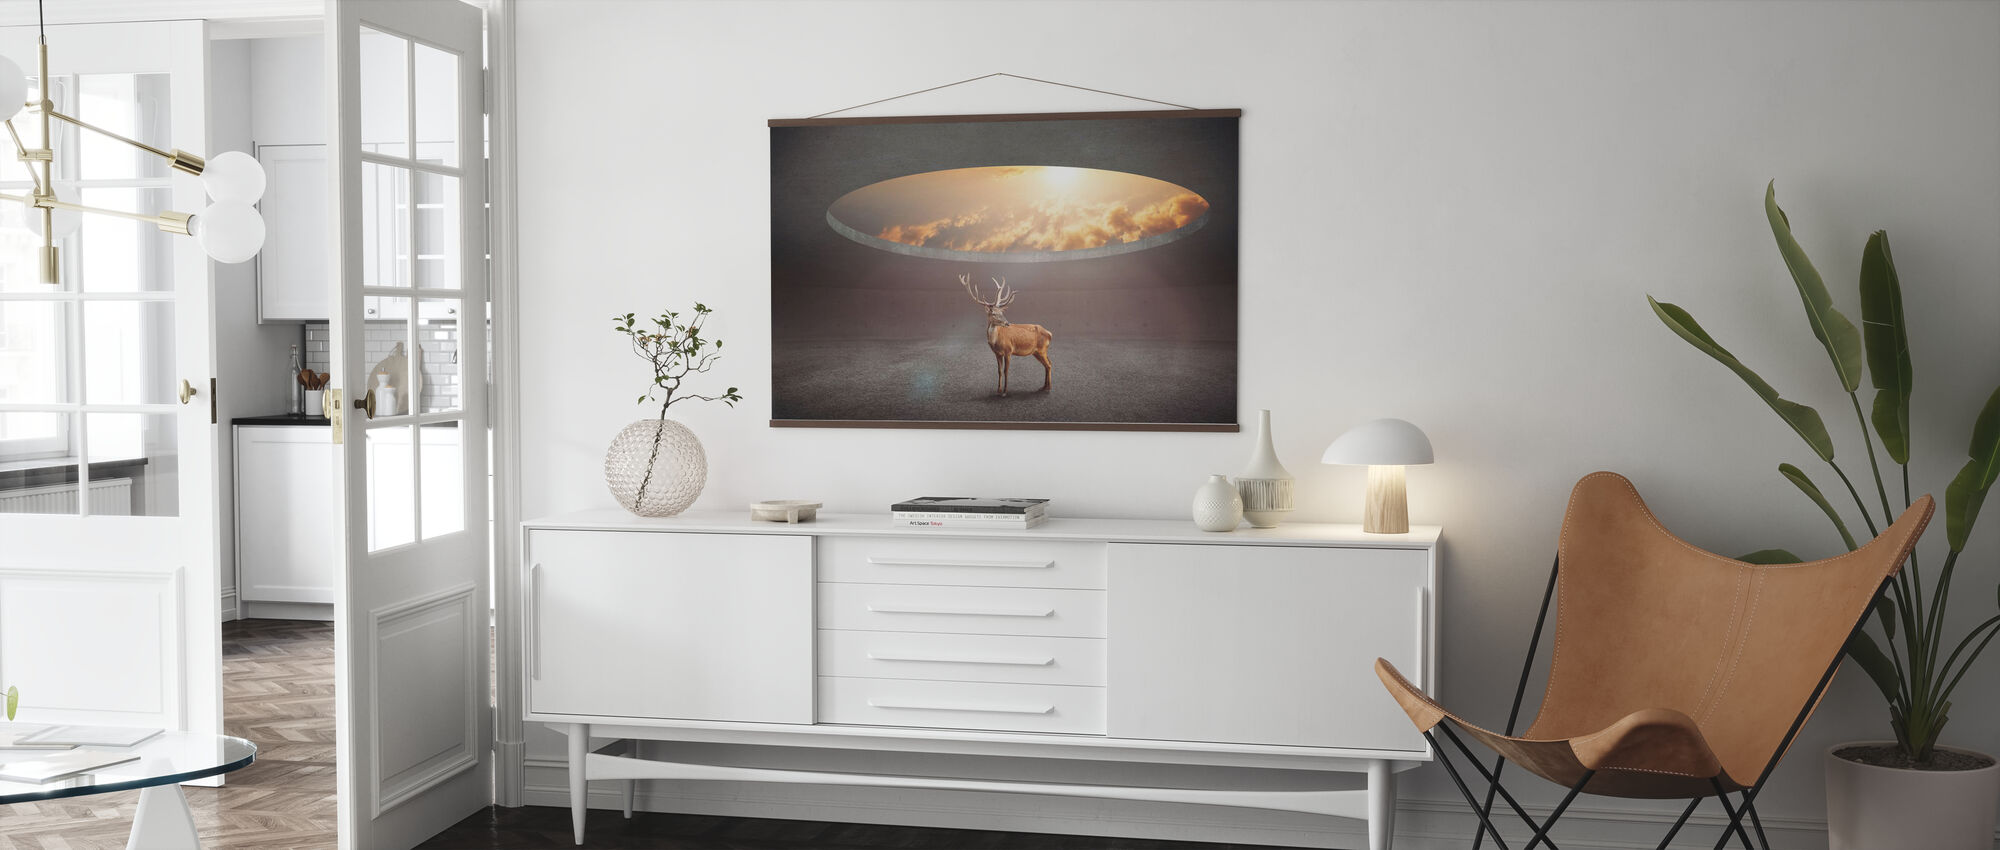 Display Ring - Poster - Living Room